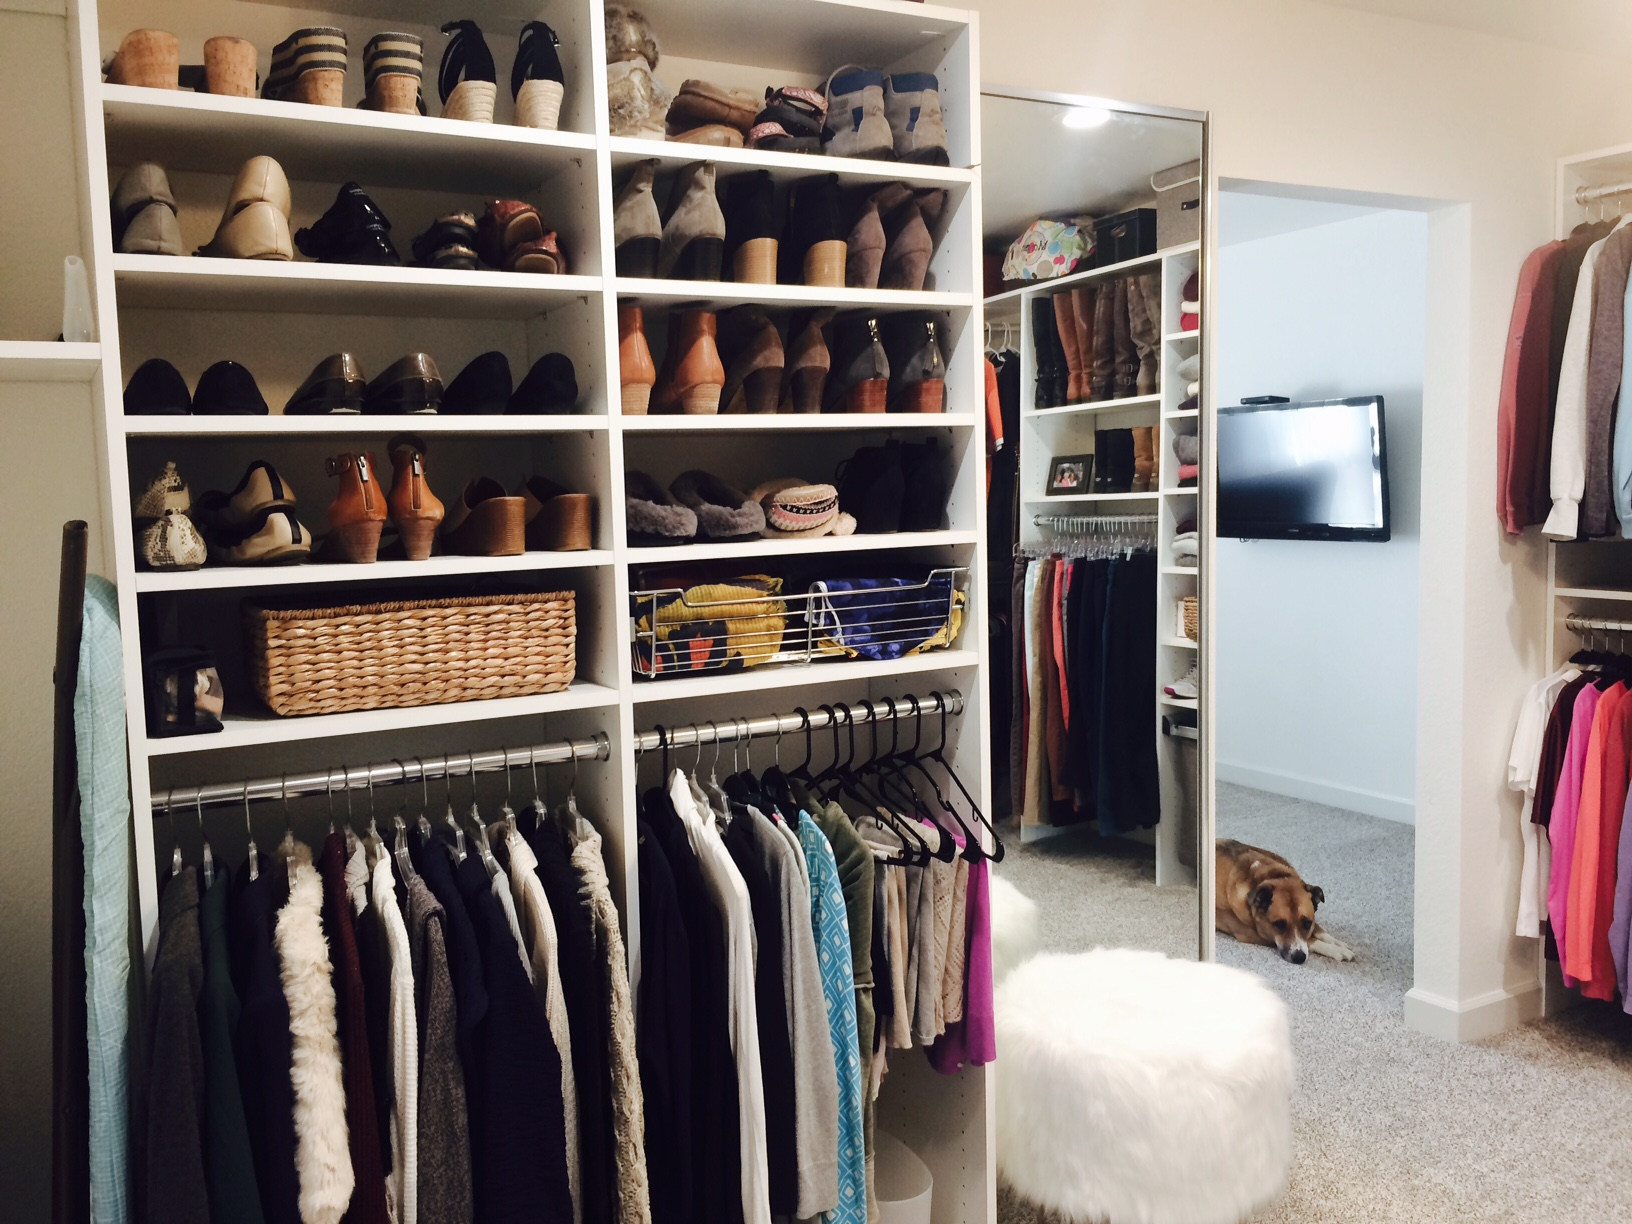 Flat shoe rack shelving doubles as a space for storage baskets.  Call Closets of Tulsa  now for your FREE consultation and 3-D closet design:  918.609.0214